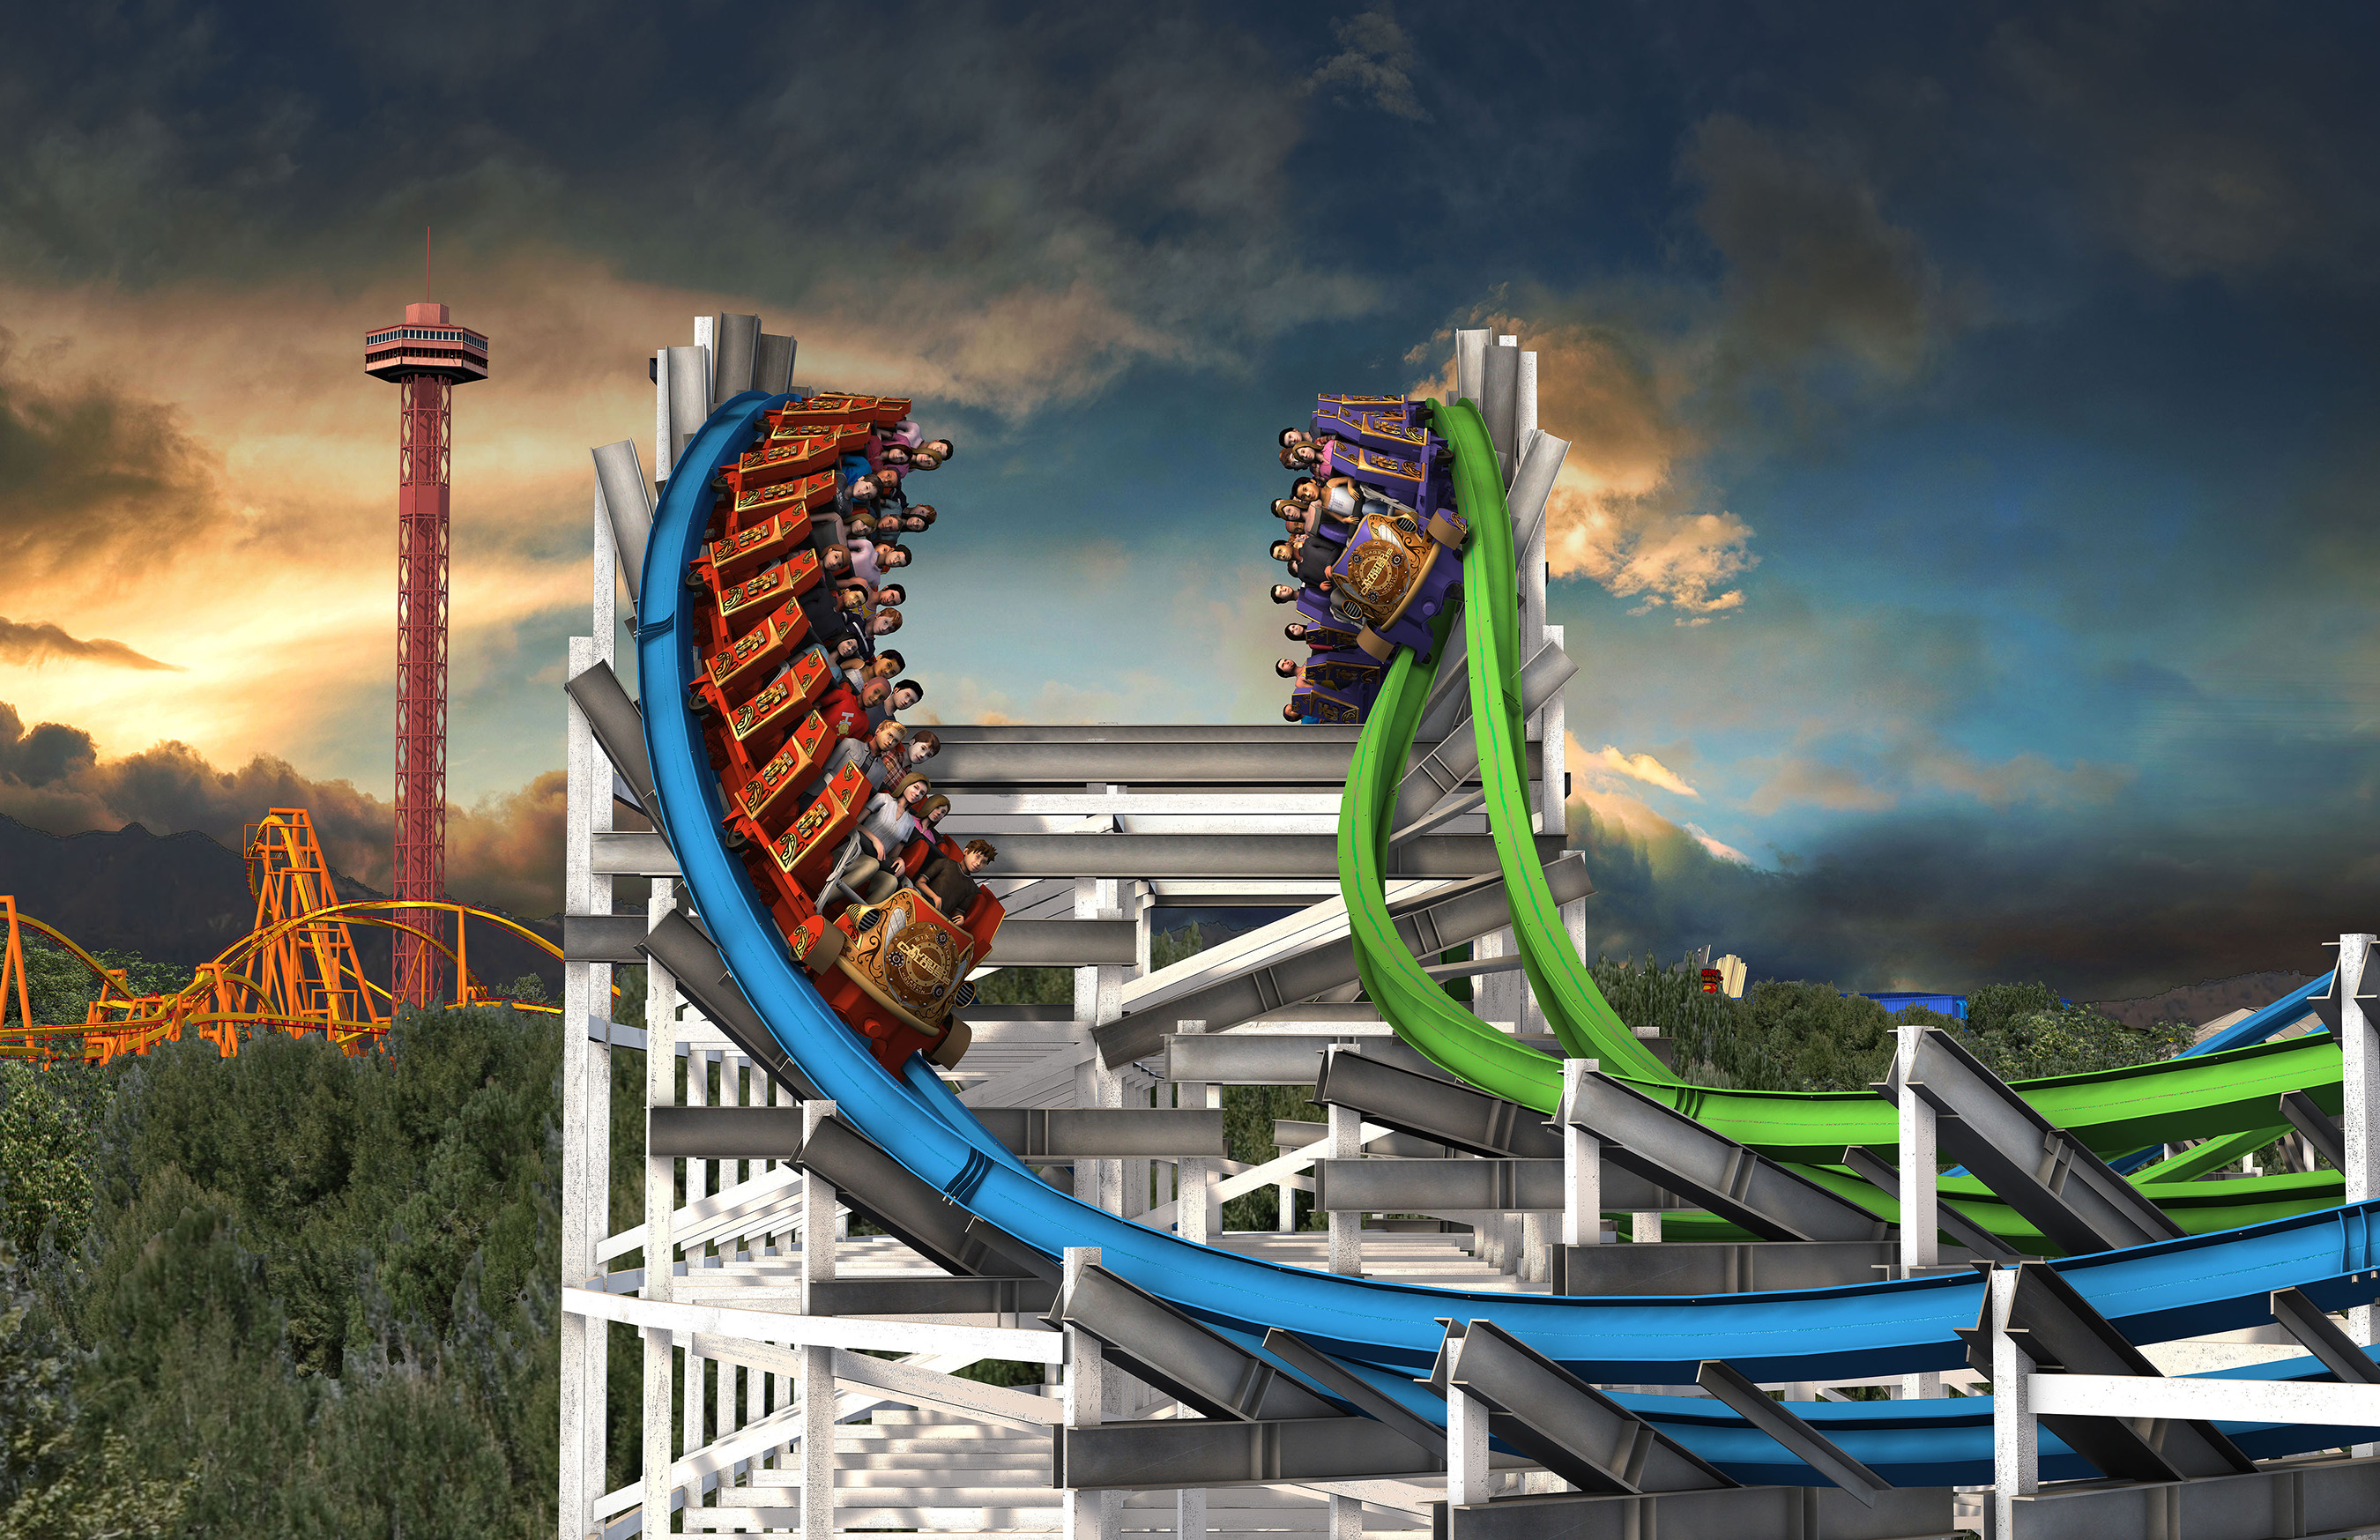 Twisted Colossus - NEW at Six Flags Magic Mountain - Spring 2015